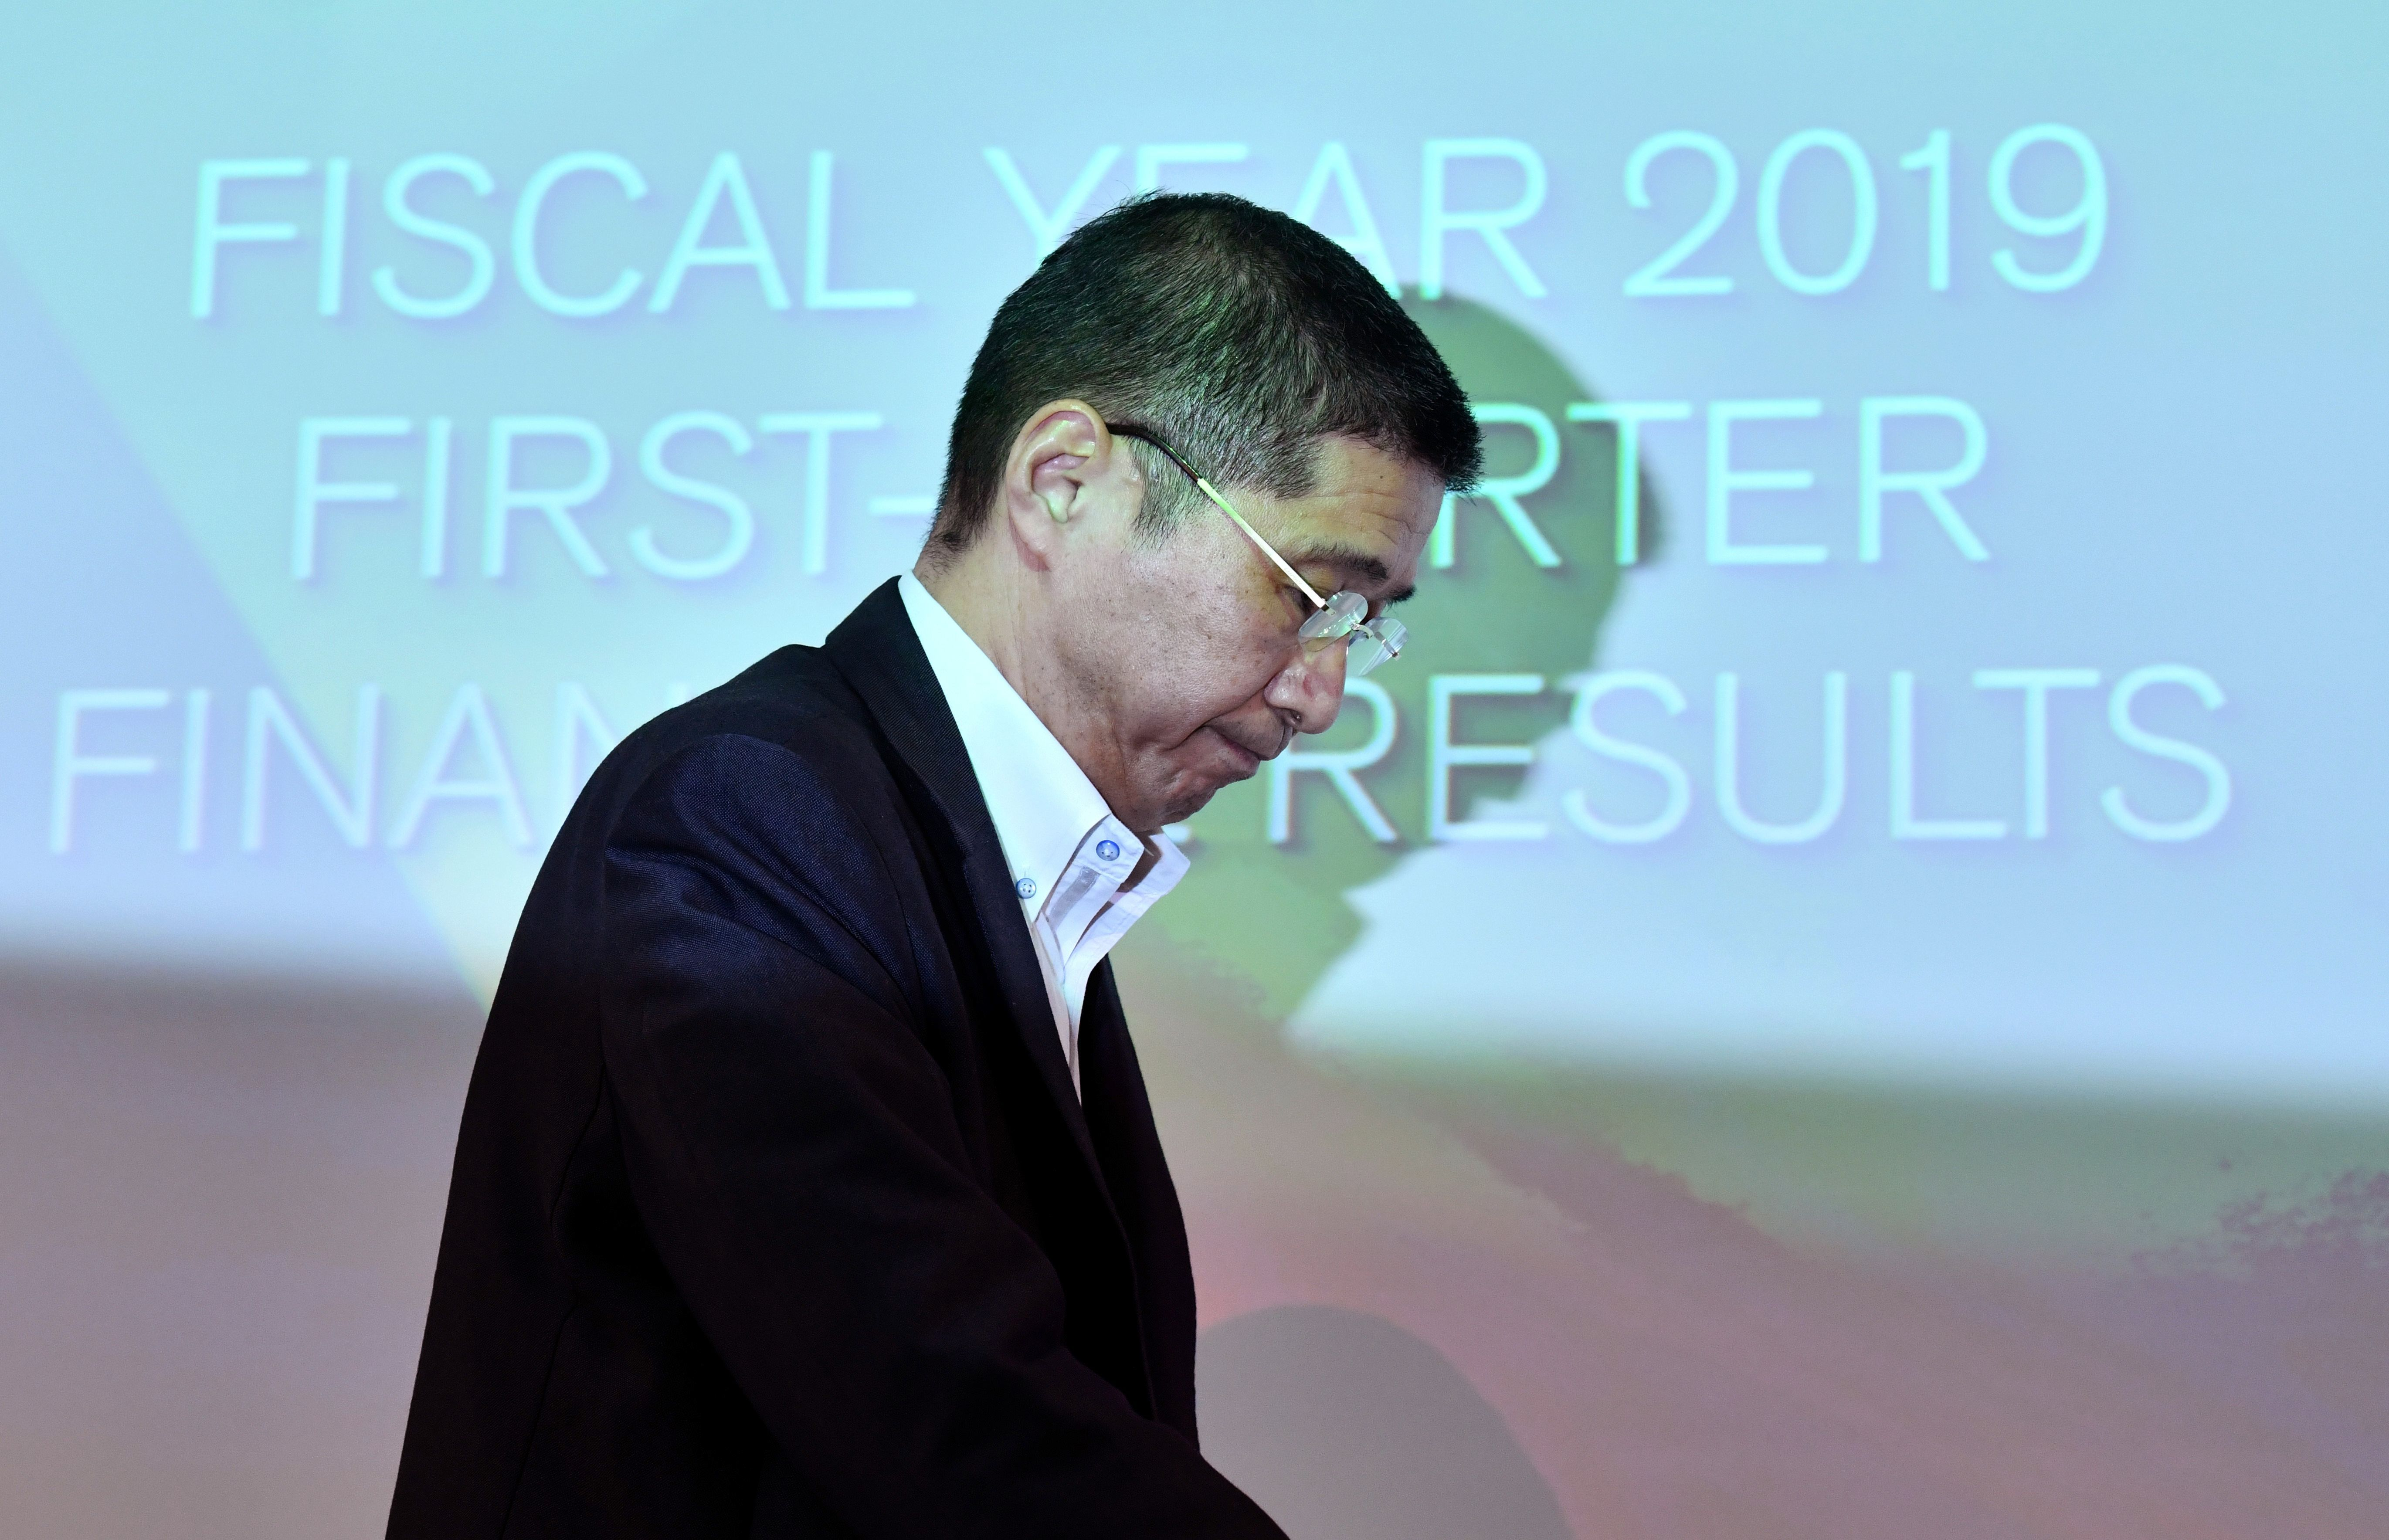 Nissan Motors president and CEO Hiroto Saikawa leaves a press conference after announcing first quarter financial results at the company headquarters in Yokohama on July 25, 2019. - Crisis-hit Japanese automaker Nissan said its net profit plunged nearly 95 percent in the first quarter due to slumping sales and growing costs. (Photo by TOSHIFUMI KITAMURA/AFP/Getty Images)